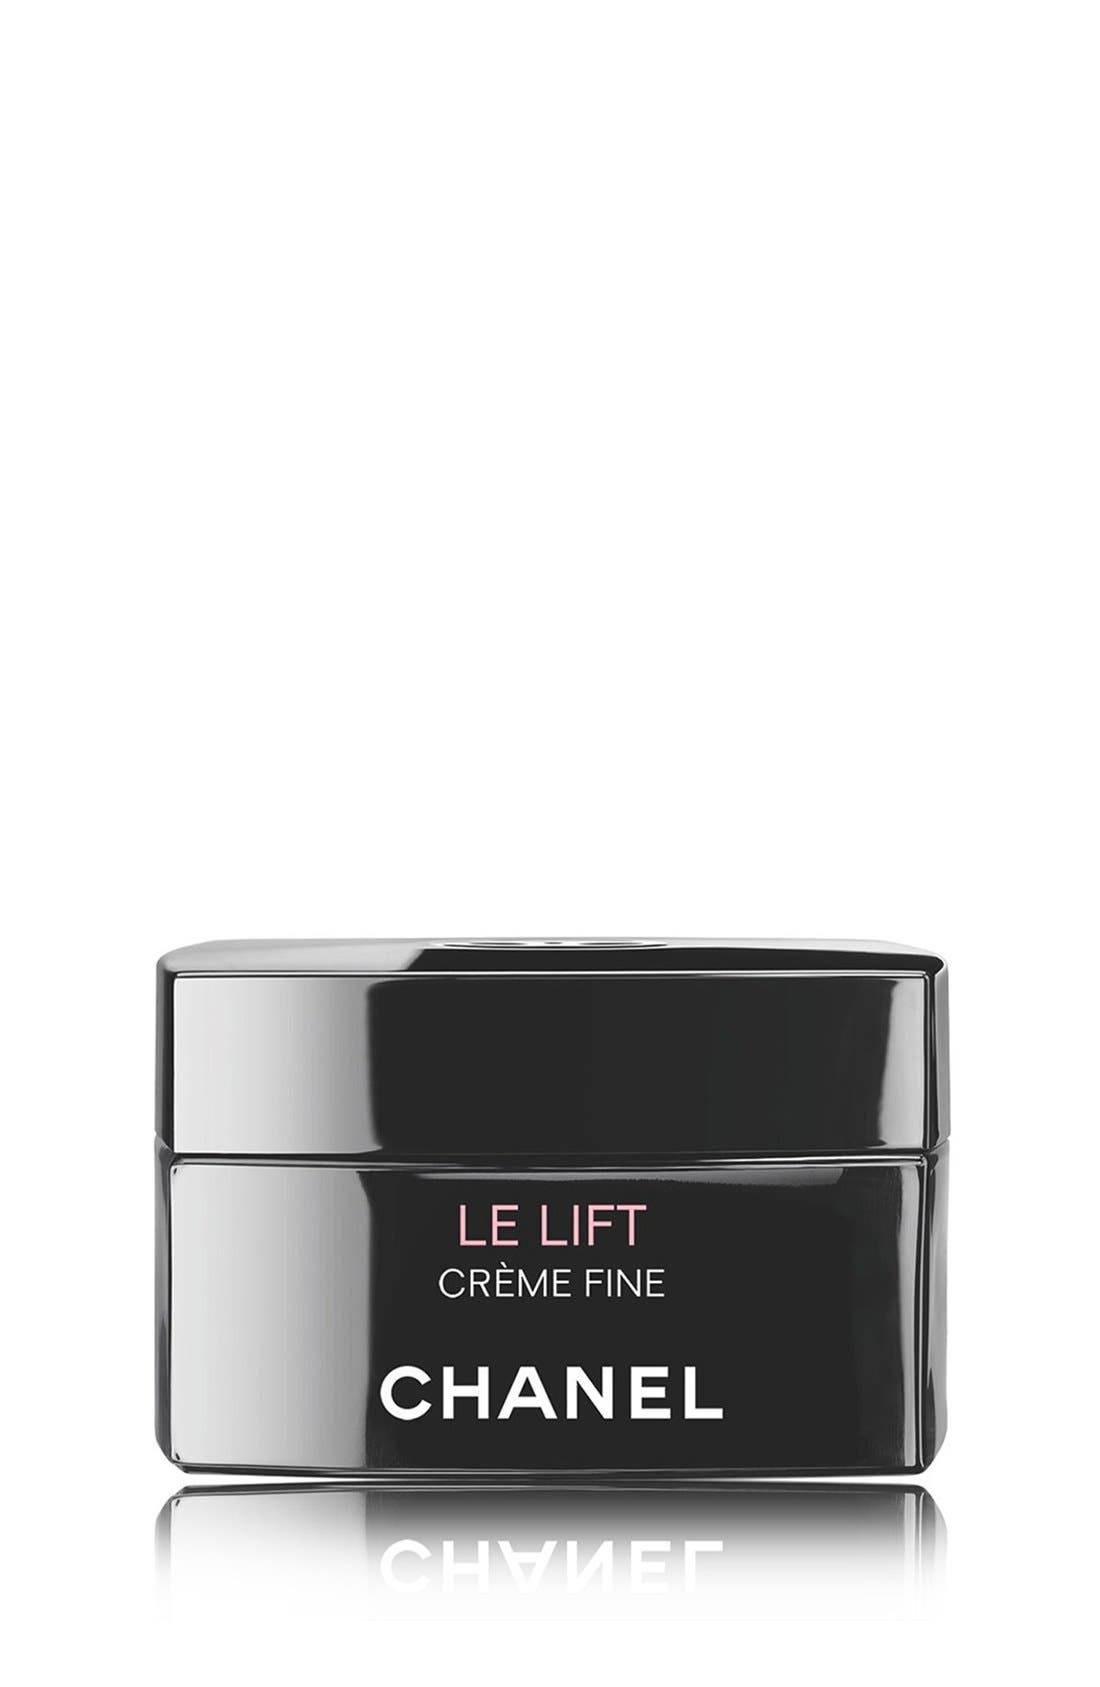 CHANEL LE LIFT CRÈME FINE 